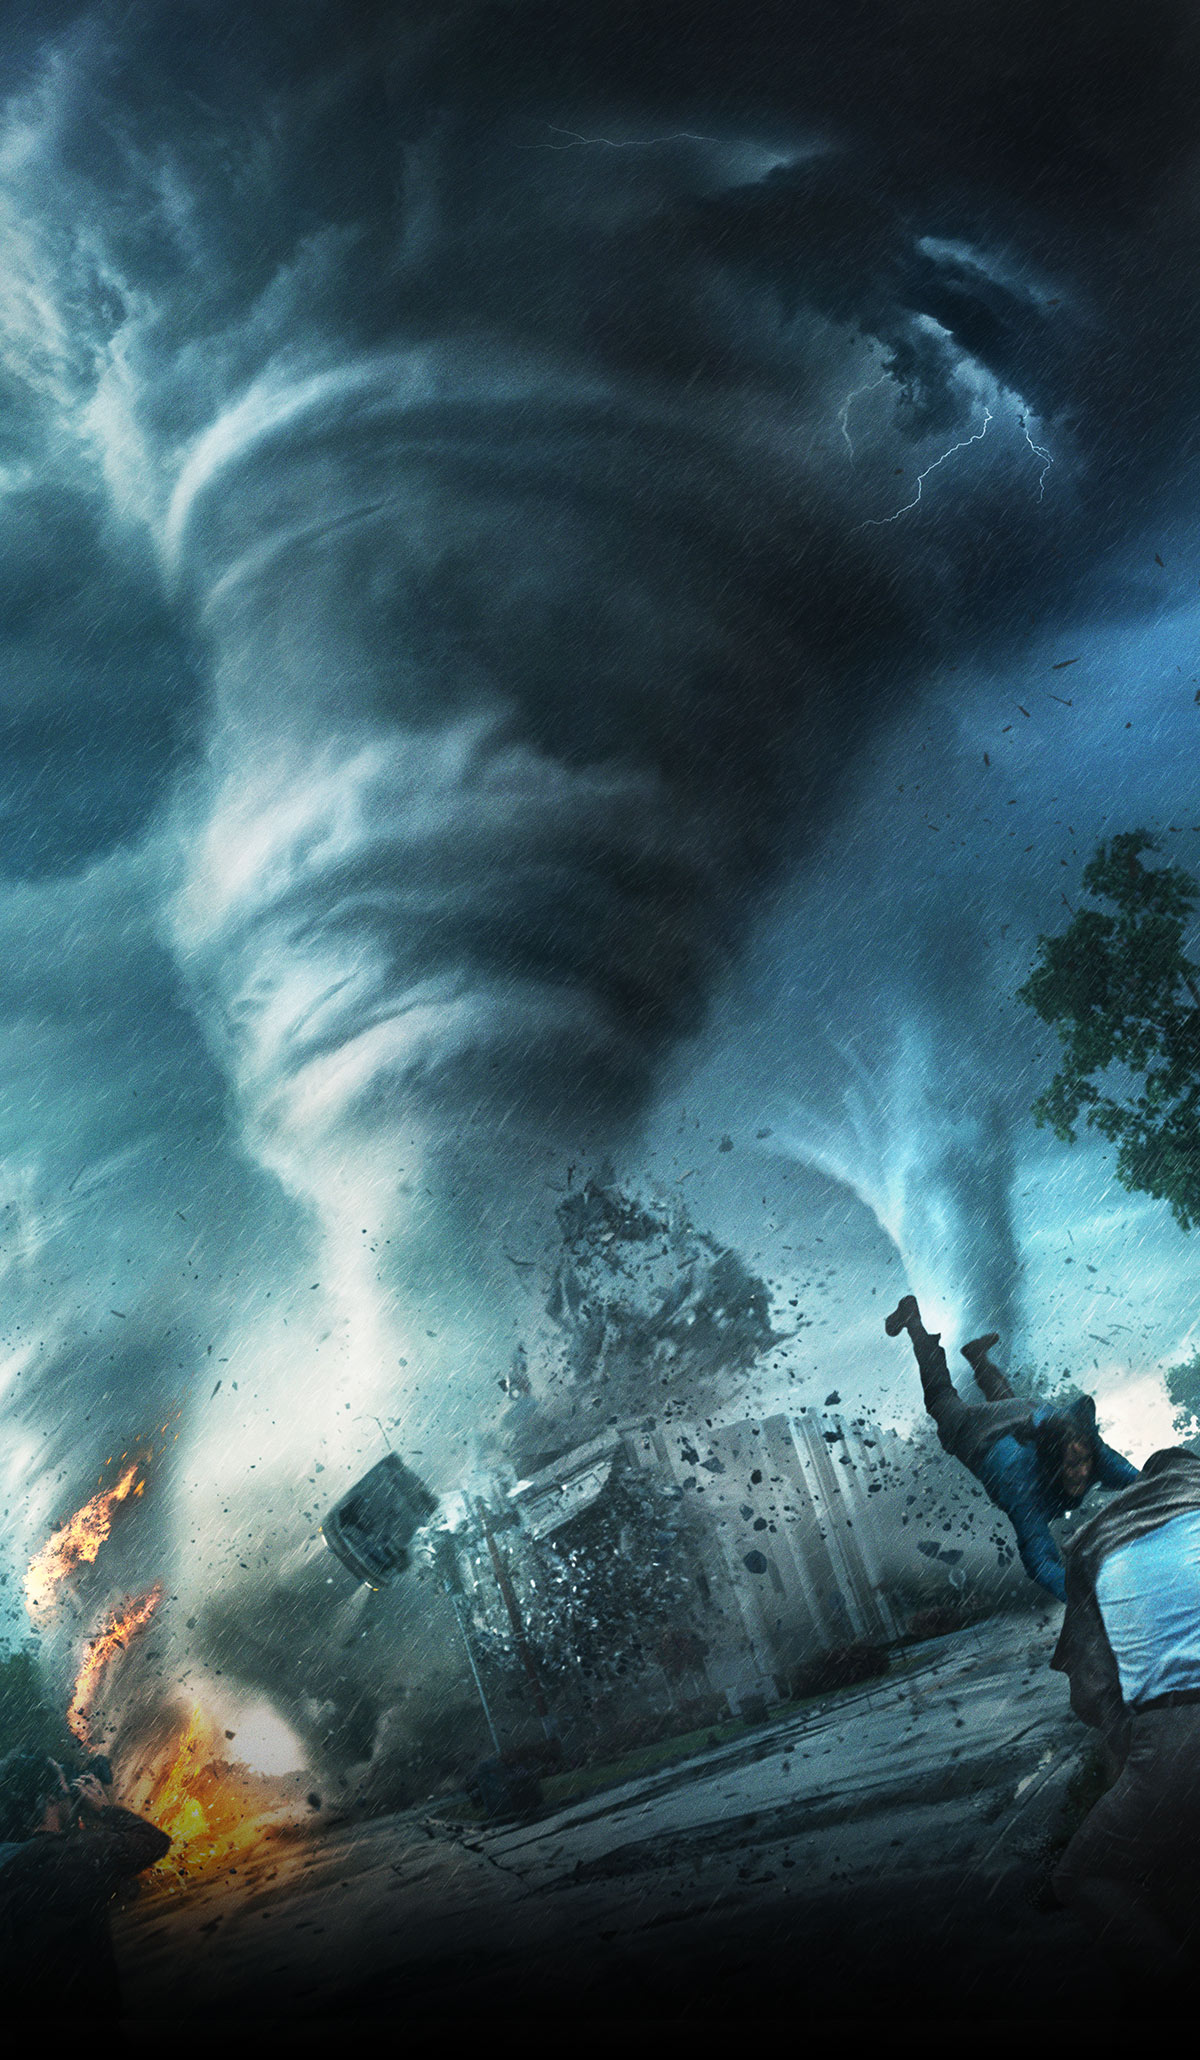 storm wallpapers high quality download free